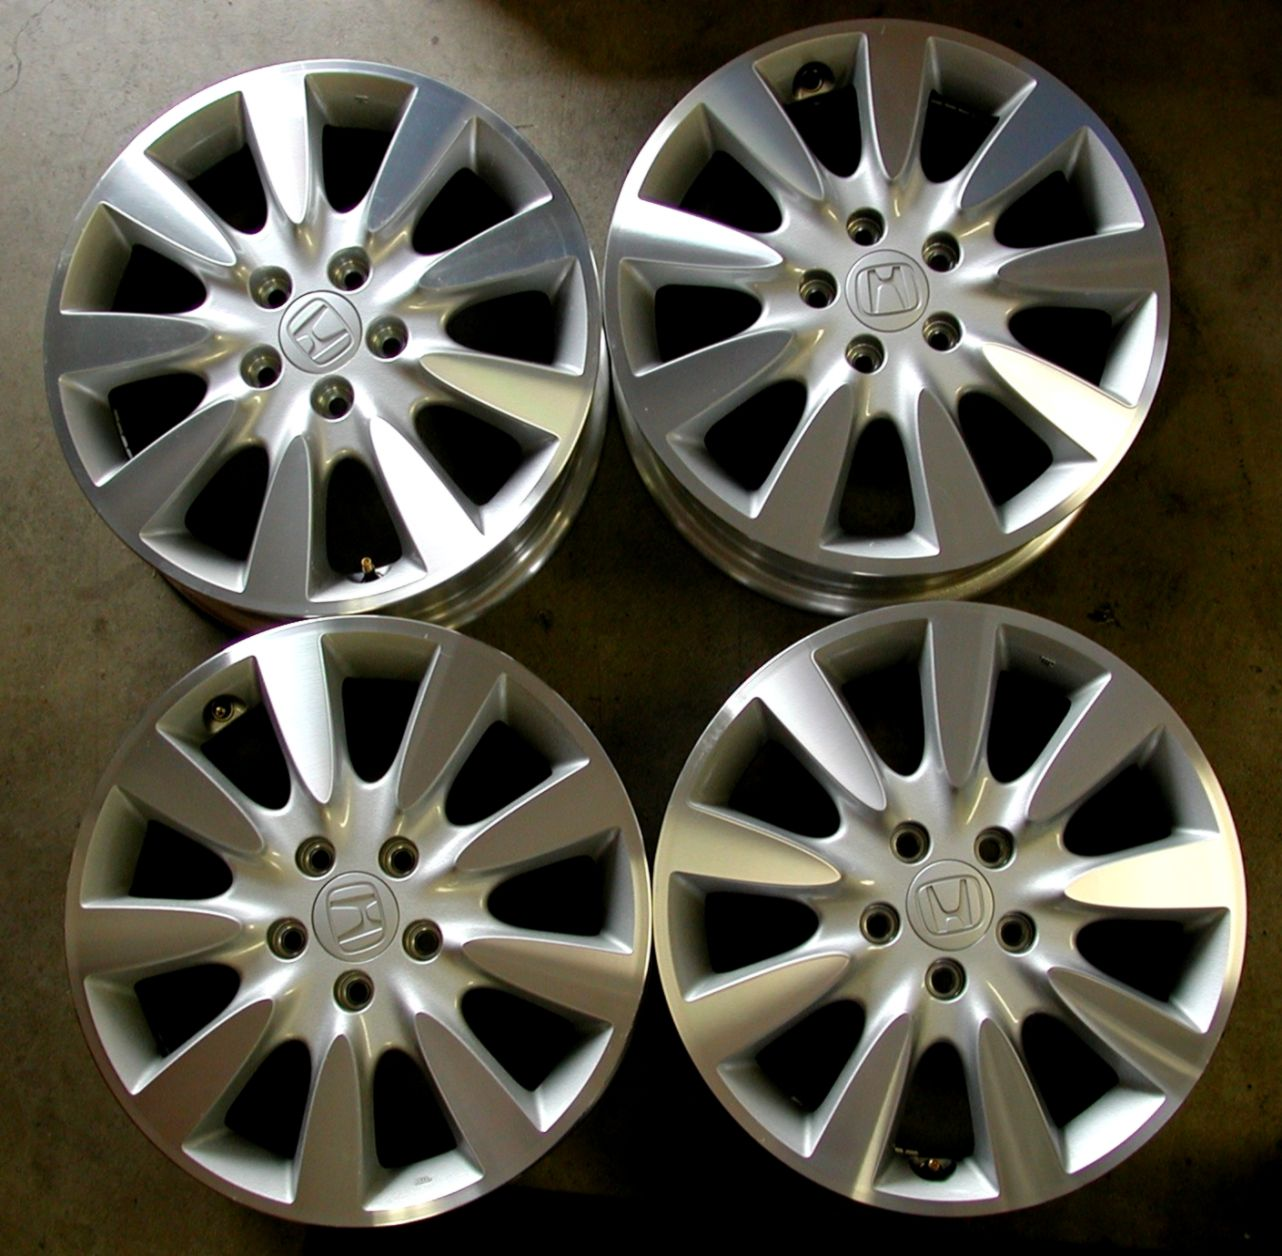 Used Honda Accord Rims For Sale >> Used Honda Accord 2006 For Sale Wallpapers Just Do It